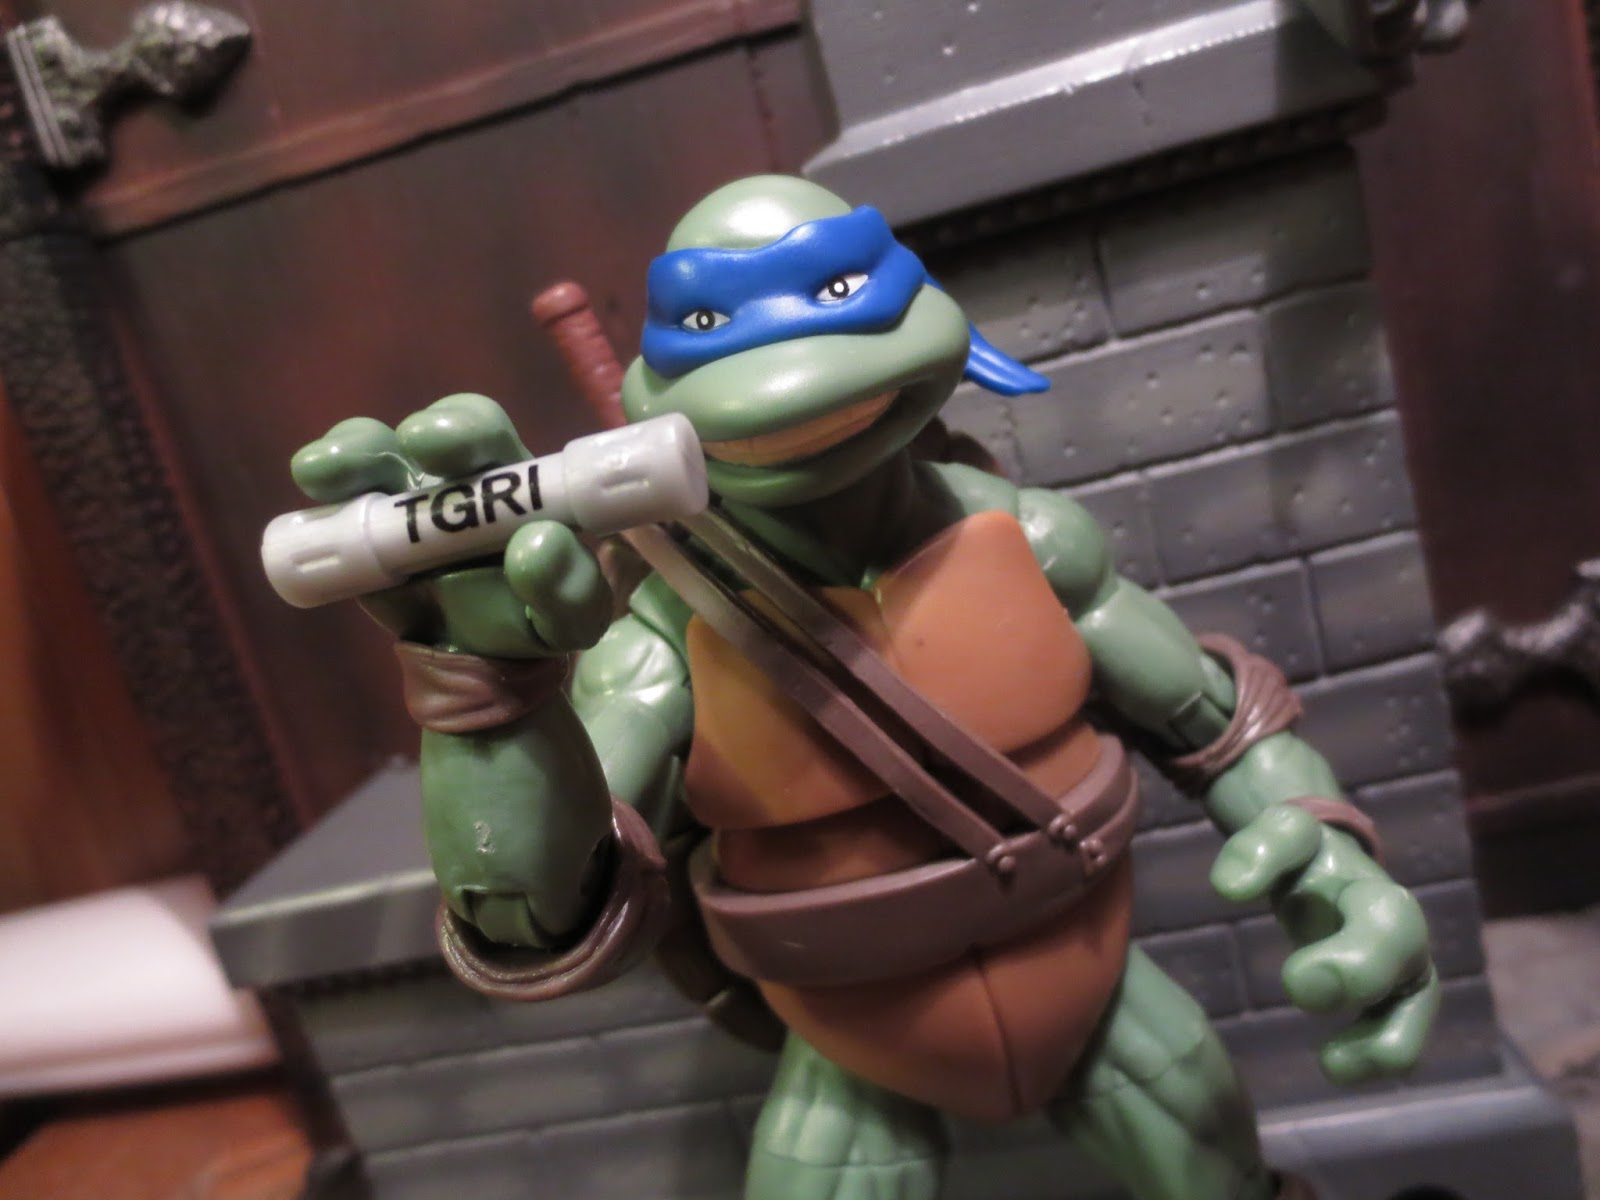 Action Figure Barbecue Action Figure Review Leonardo From